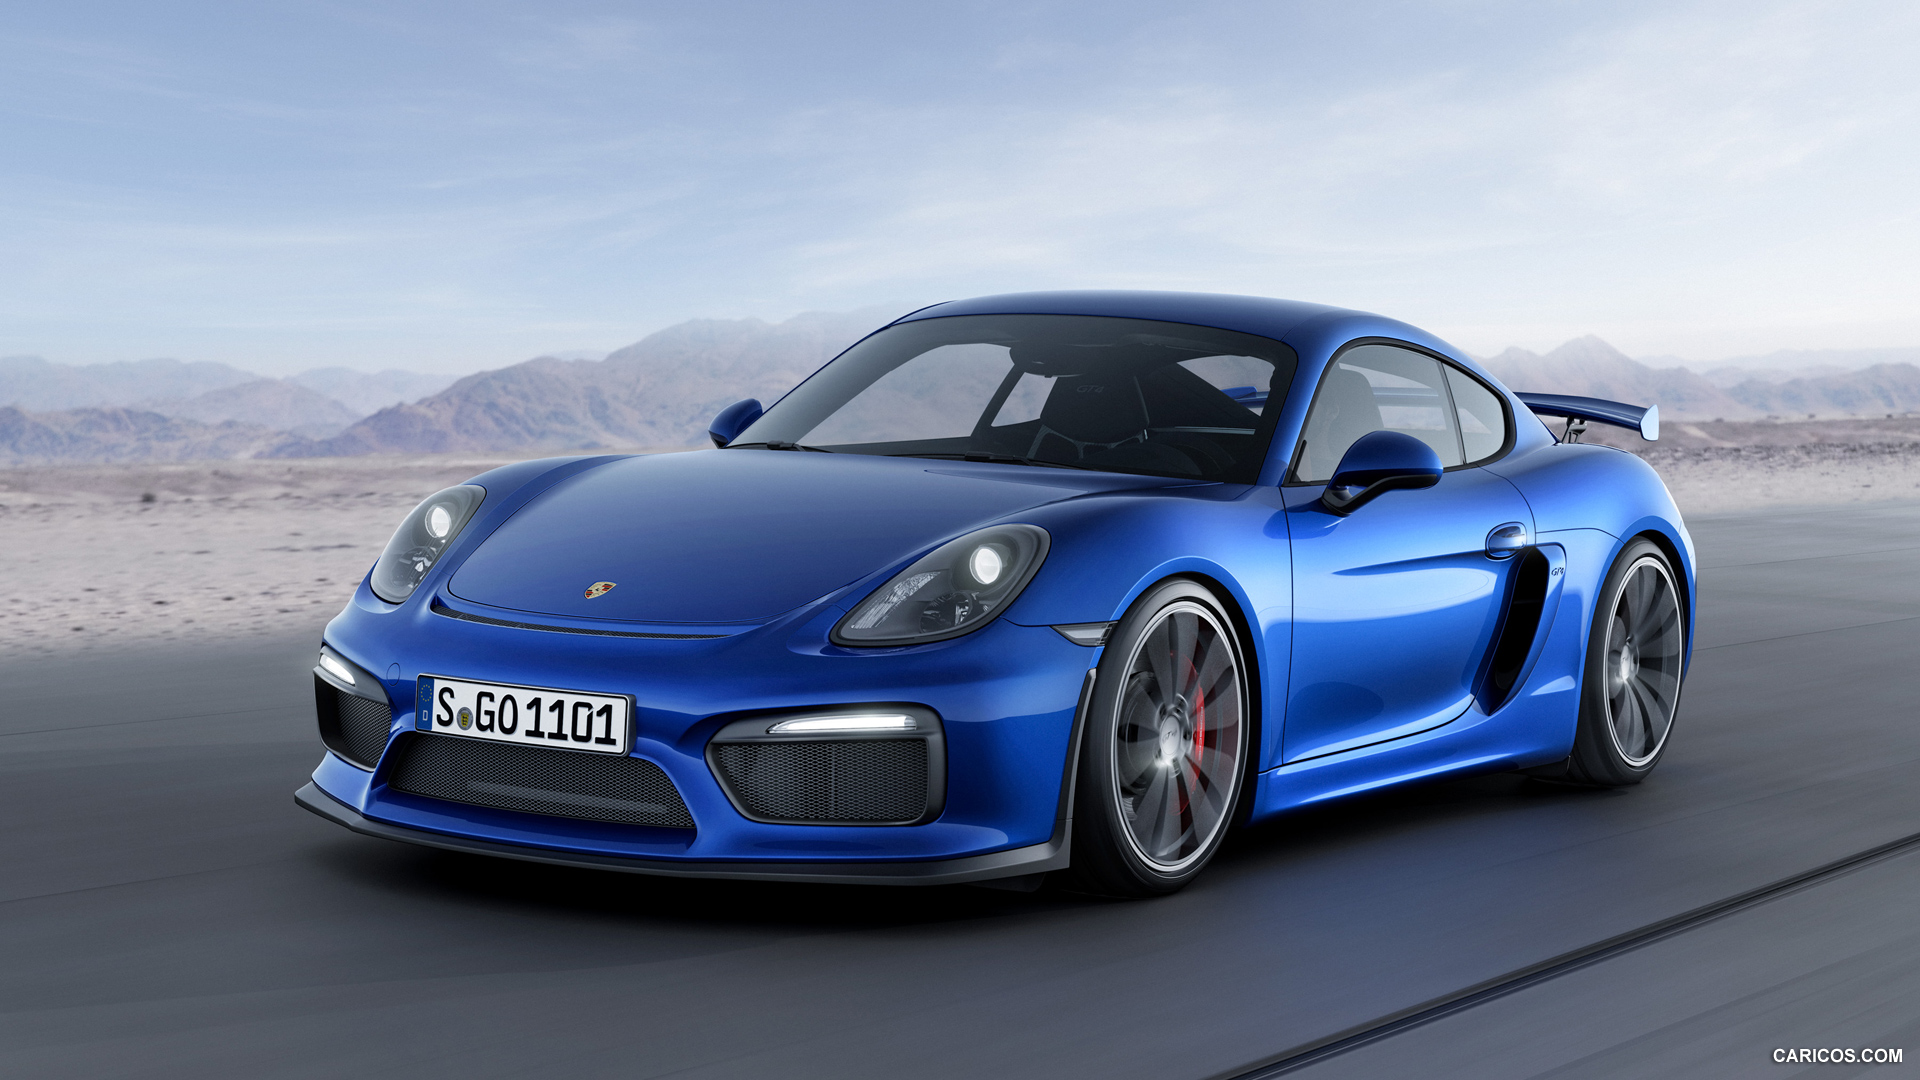 1920x1080 - Porsche Cayman Wallpapers 7